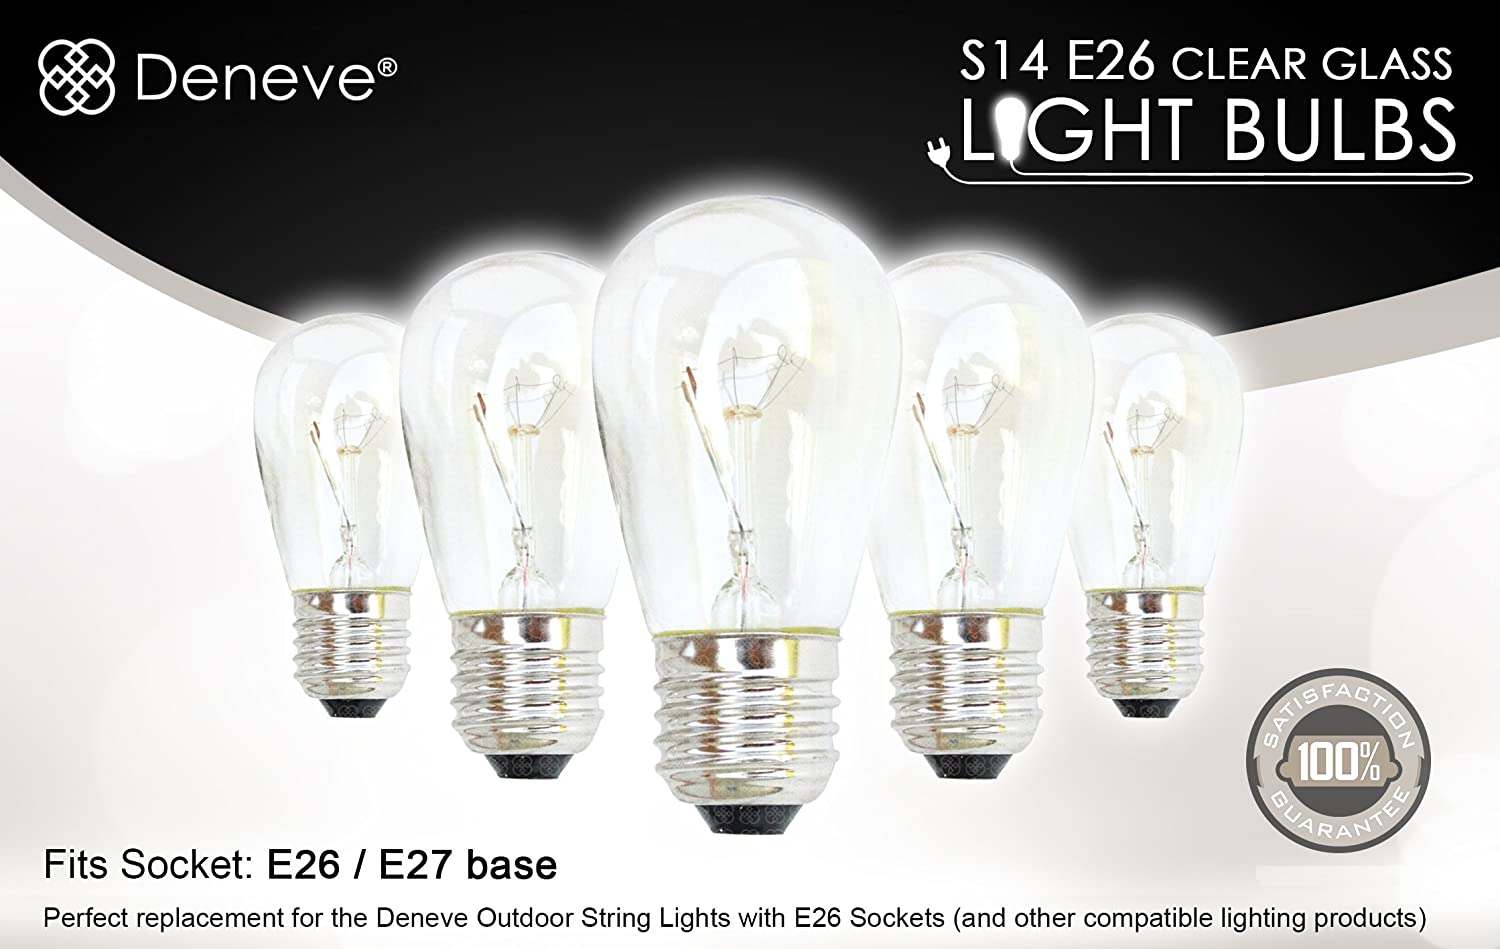 String light company incandescent light bulb pack of 25 - S14 Bulbs By Deneve 11 Watts Clear Glass S14 Incandescent Light Bulbs For E26 E27 Sockets 25 Pack Amazon Com